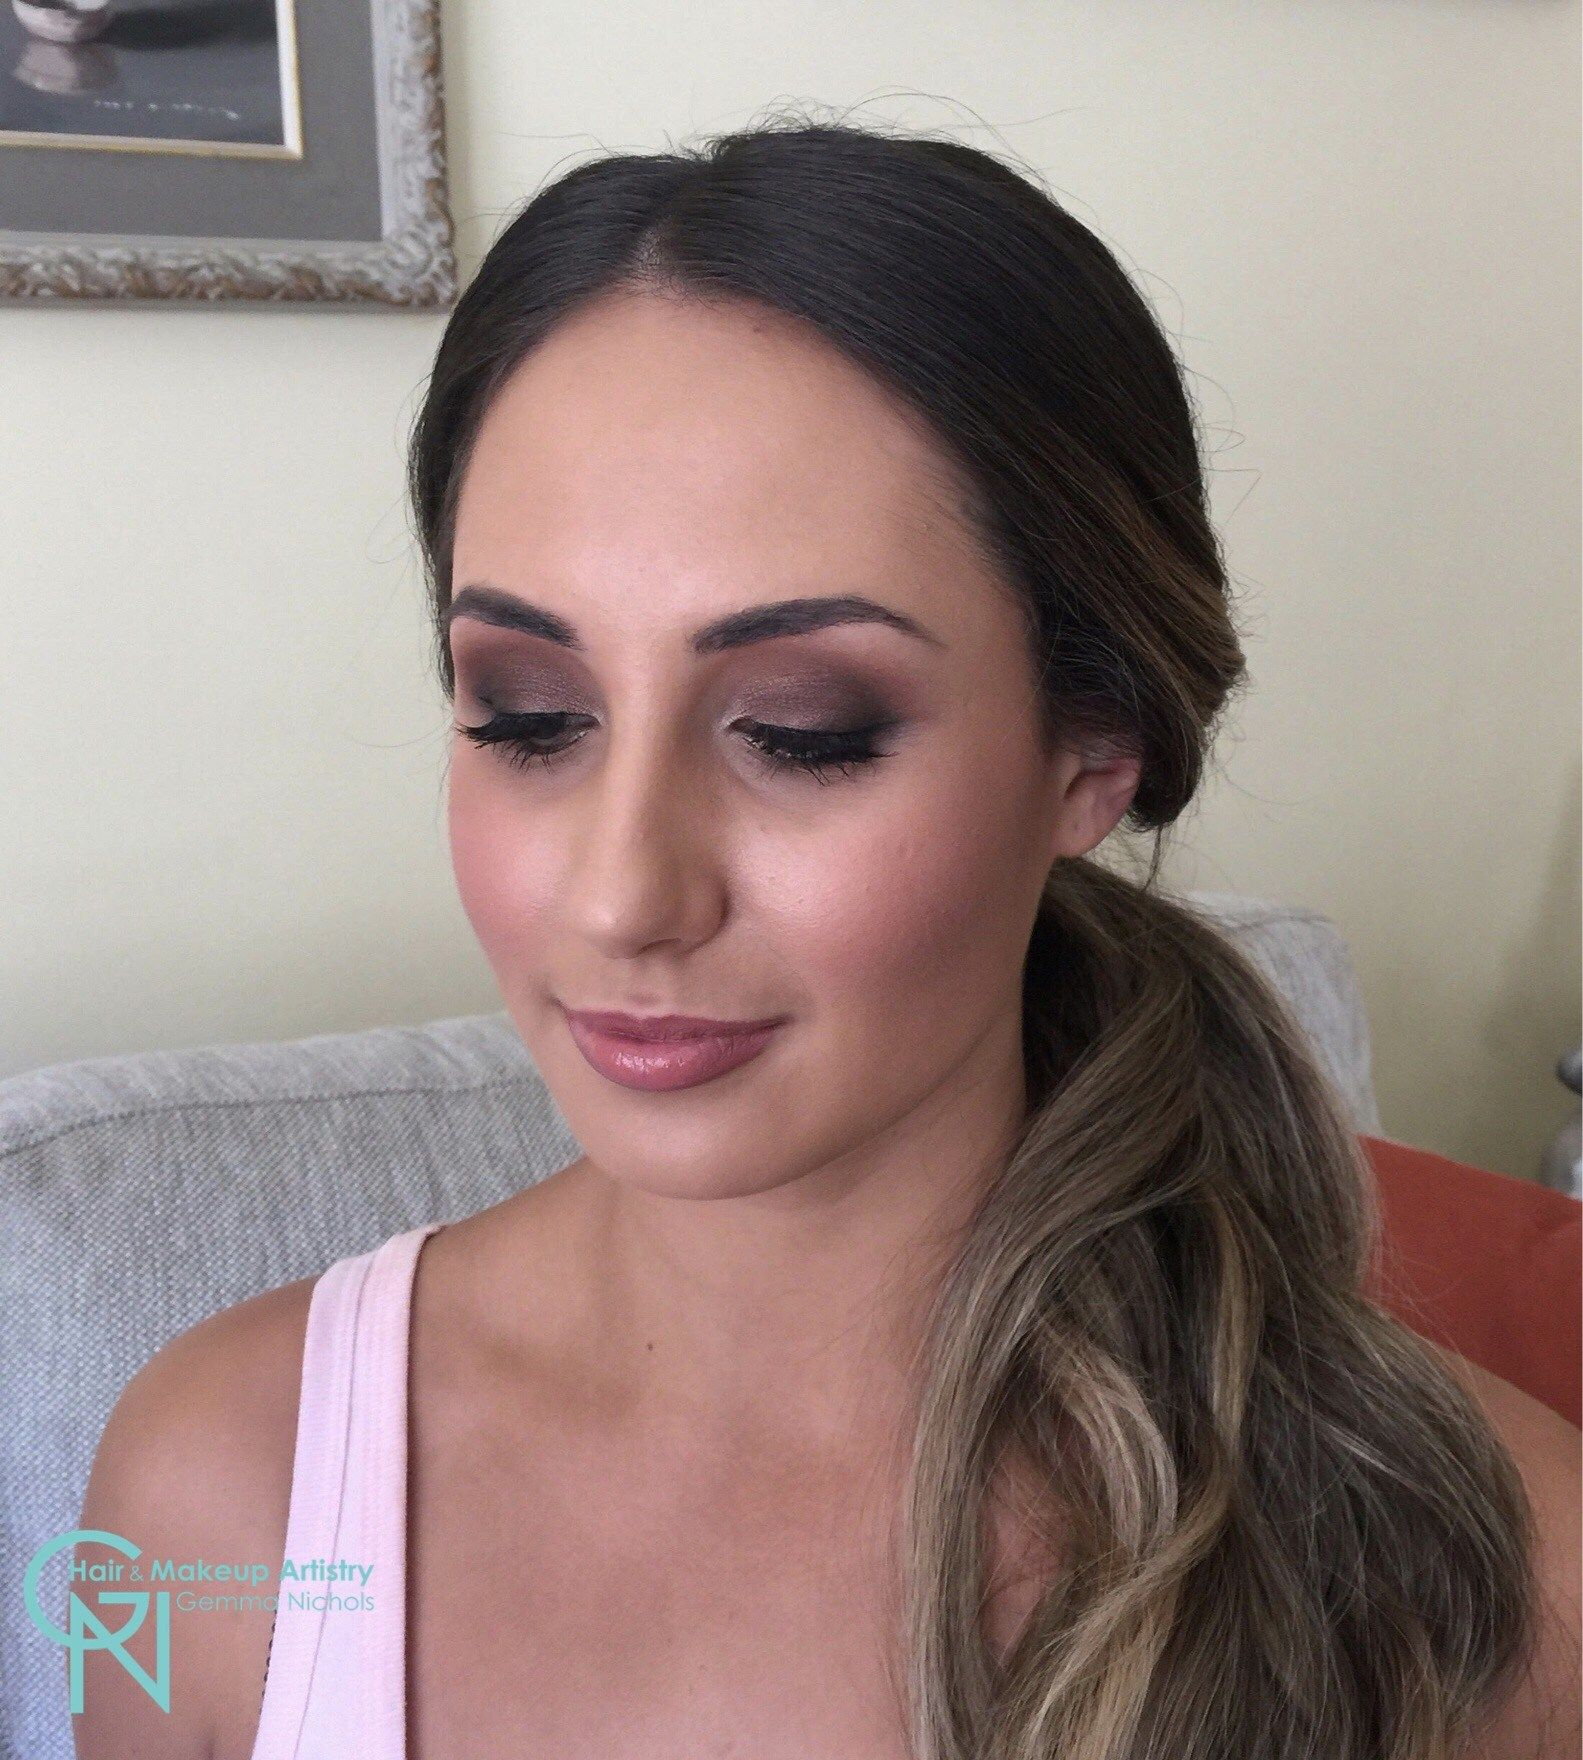 Smokey Eyes For Bridesmaid By Gemma Nichols Hair And Makeup Artistry Mobile Sydney